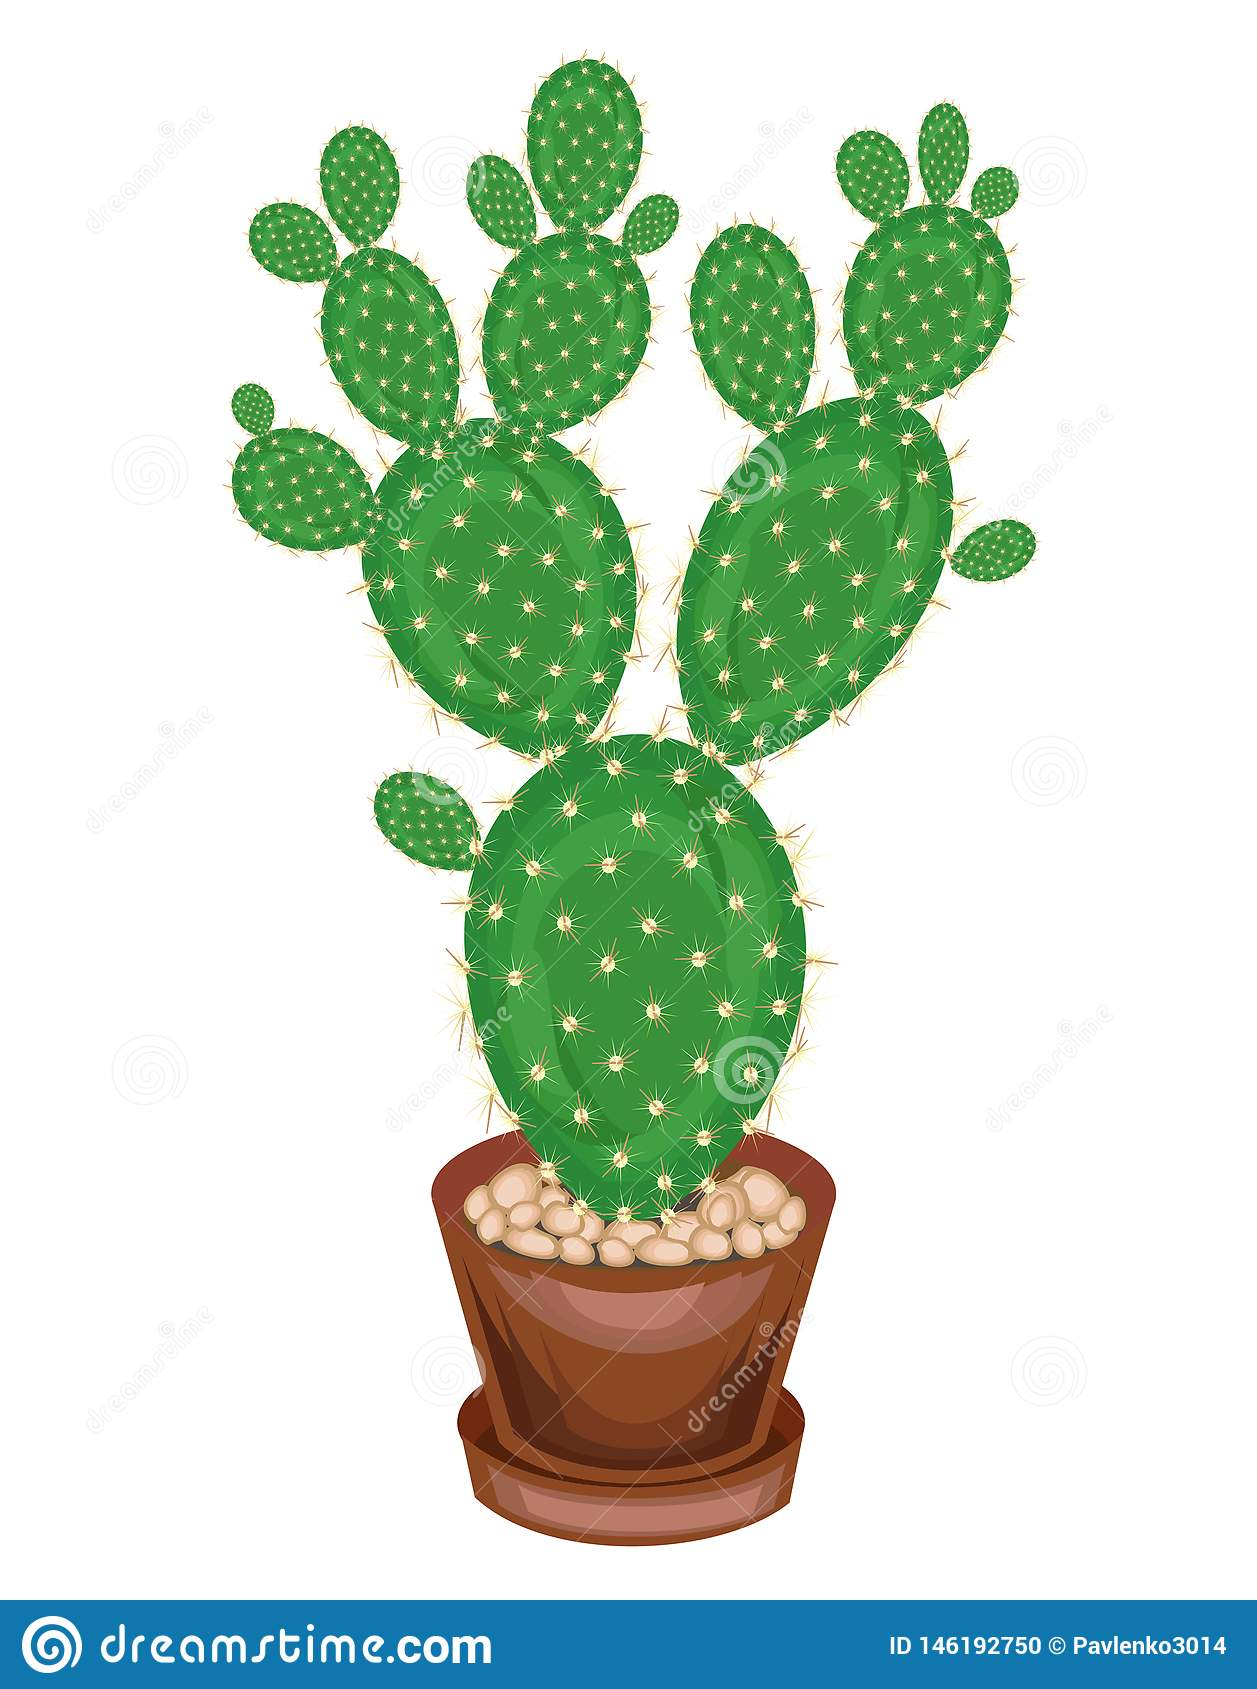 A potted plant is shown. Cactus Opuntia with flat juicy green leafy stems, covered with sharp thorns. Lovely hobby for collectors